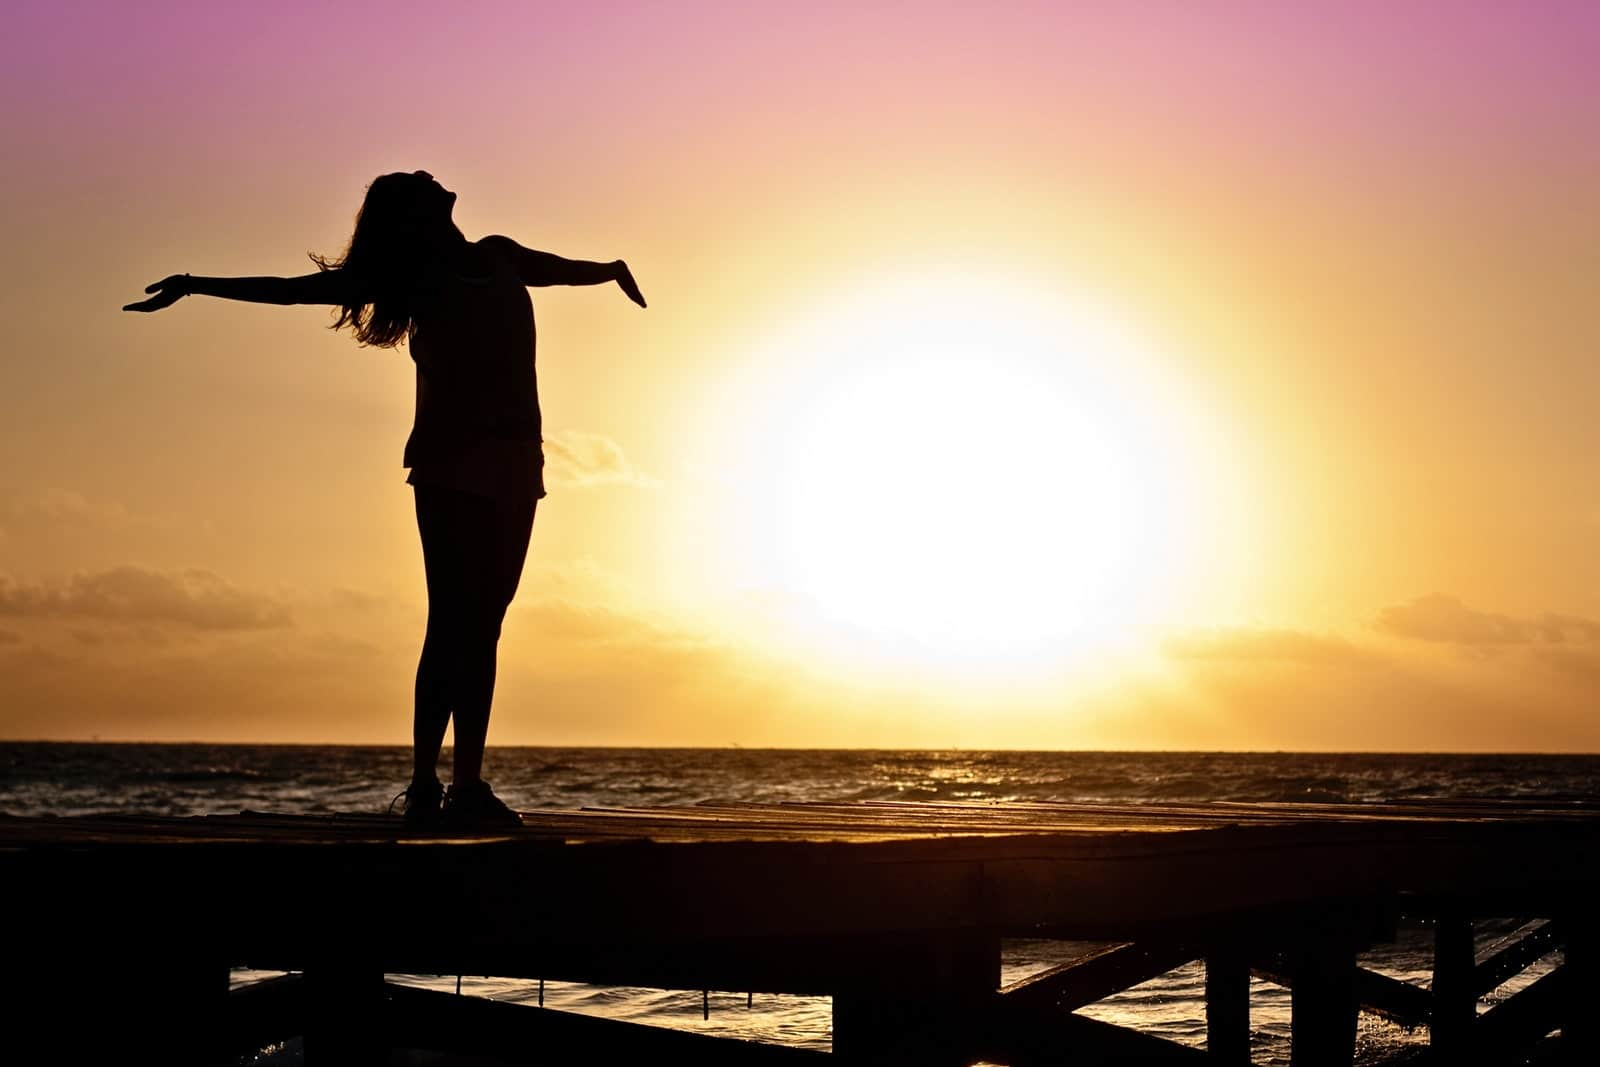 a woman standing arms outstretched toward the sunset symbolizing freedom from energy vampires